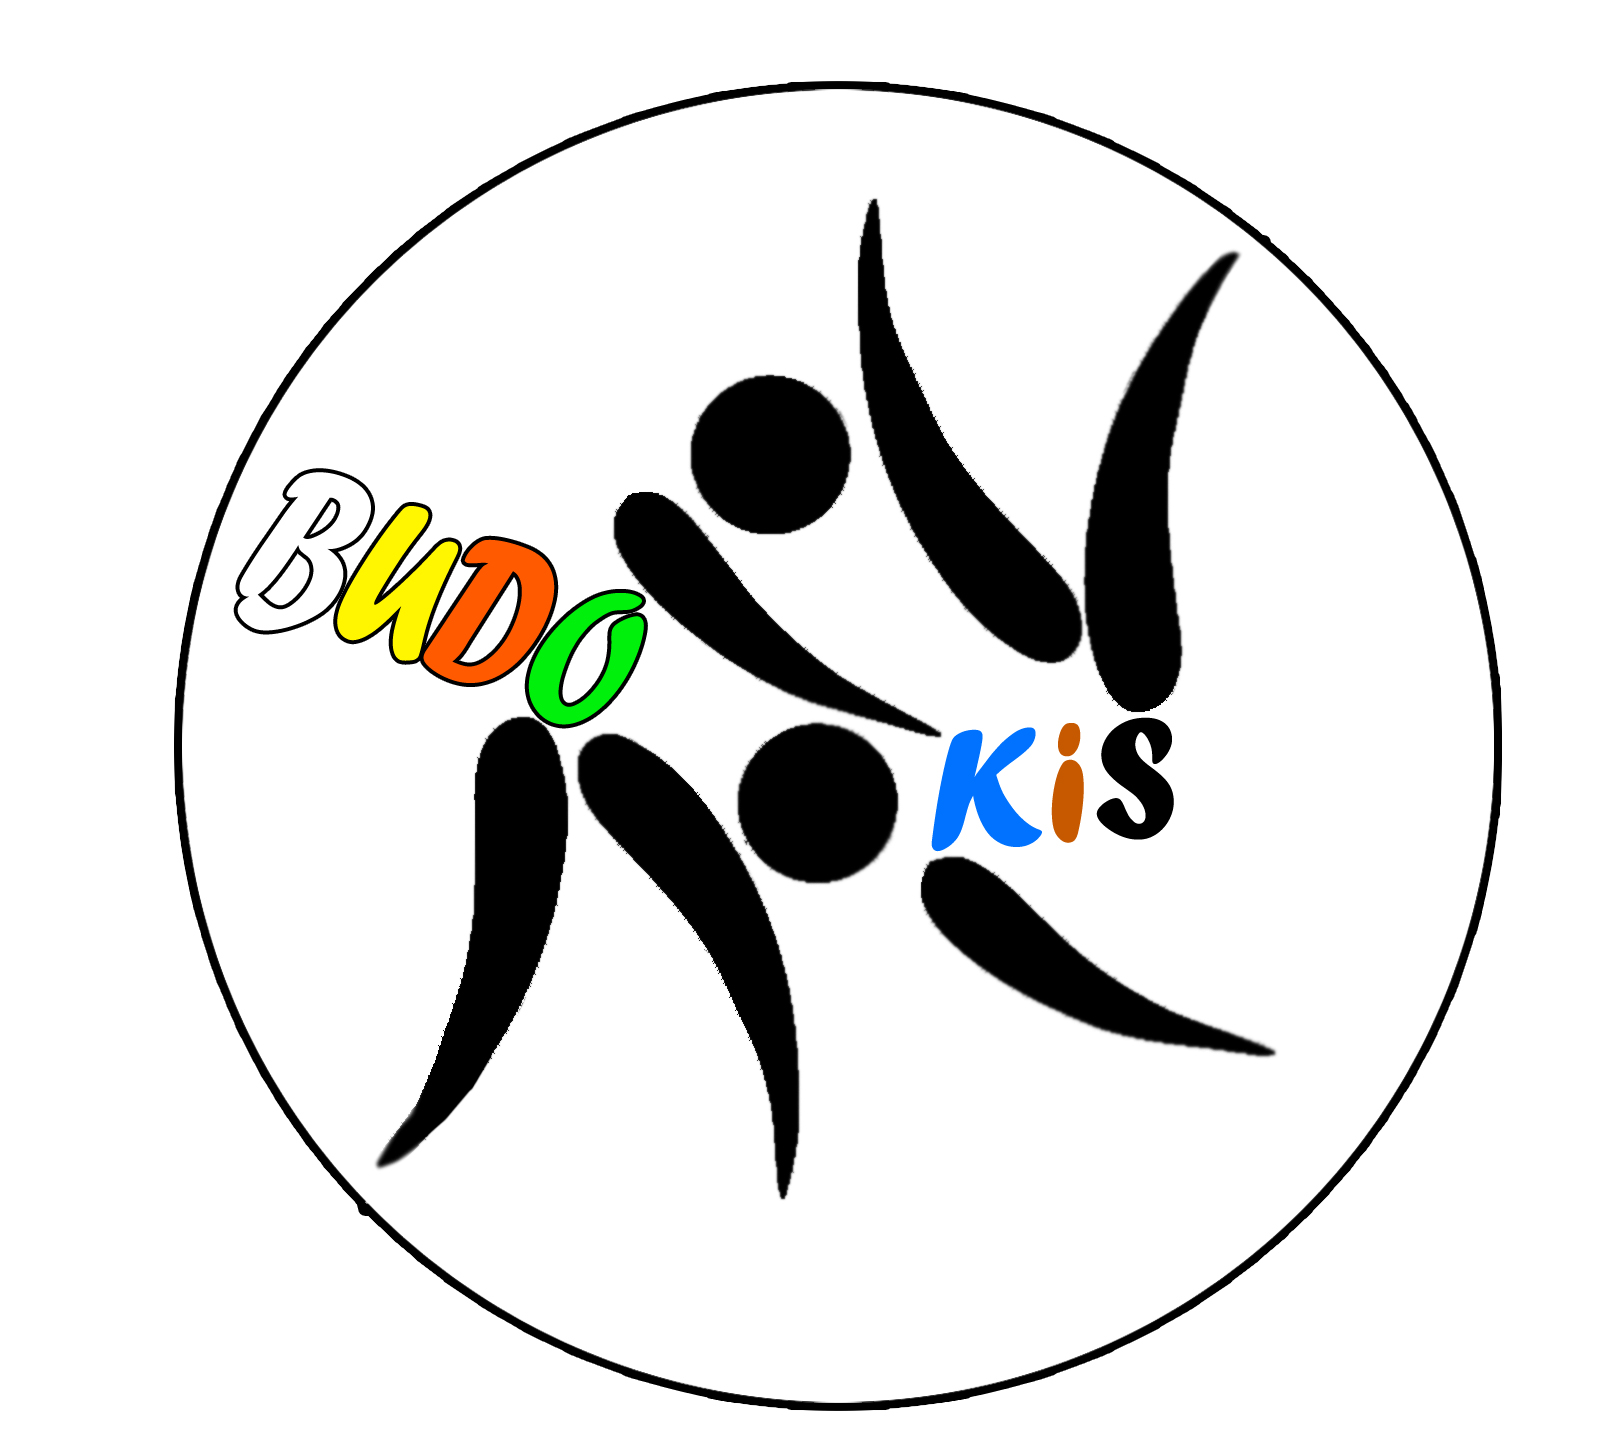 Neues Verbandsprojekt - Budo-Kindersport